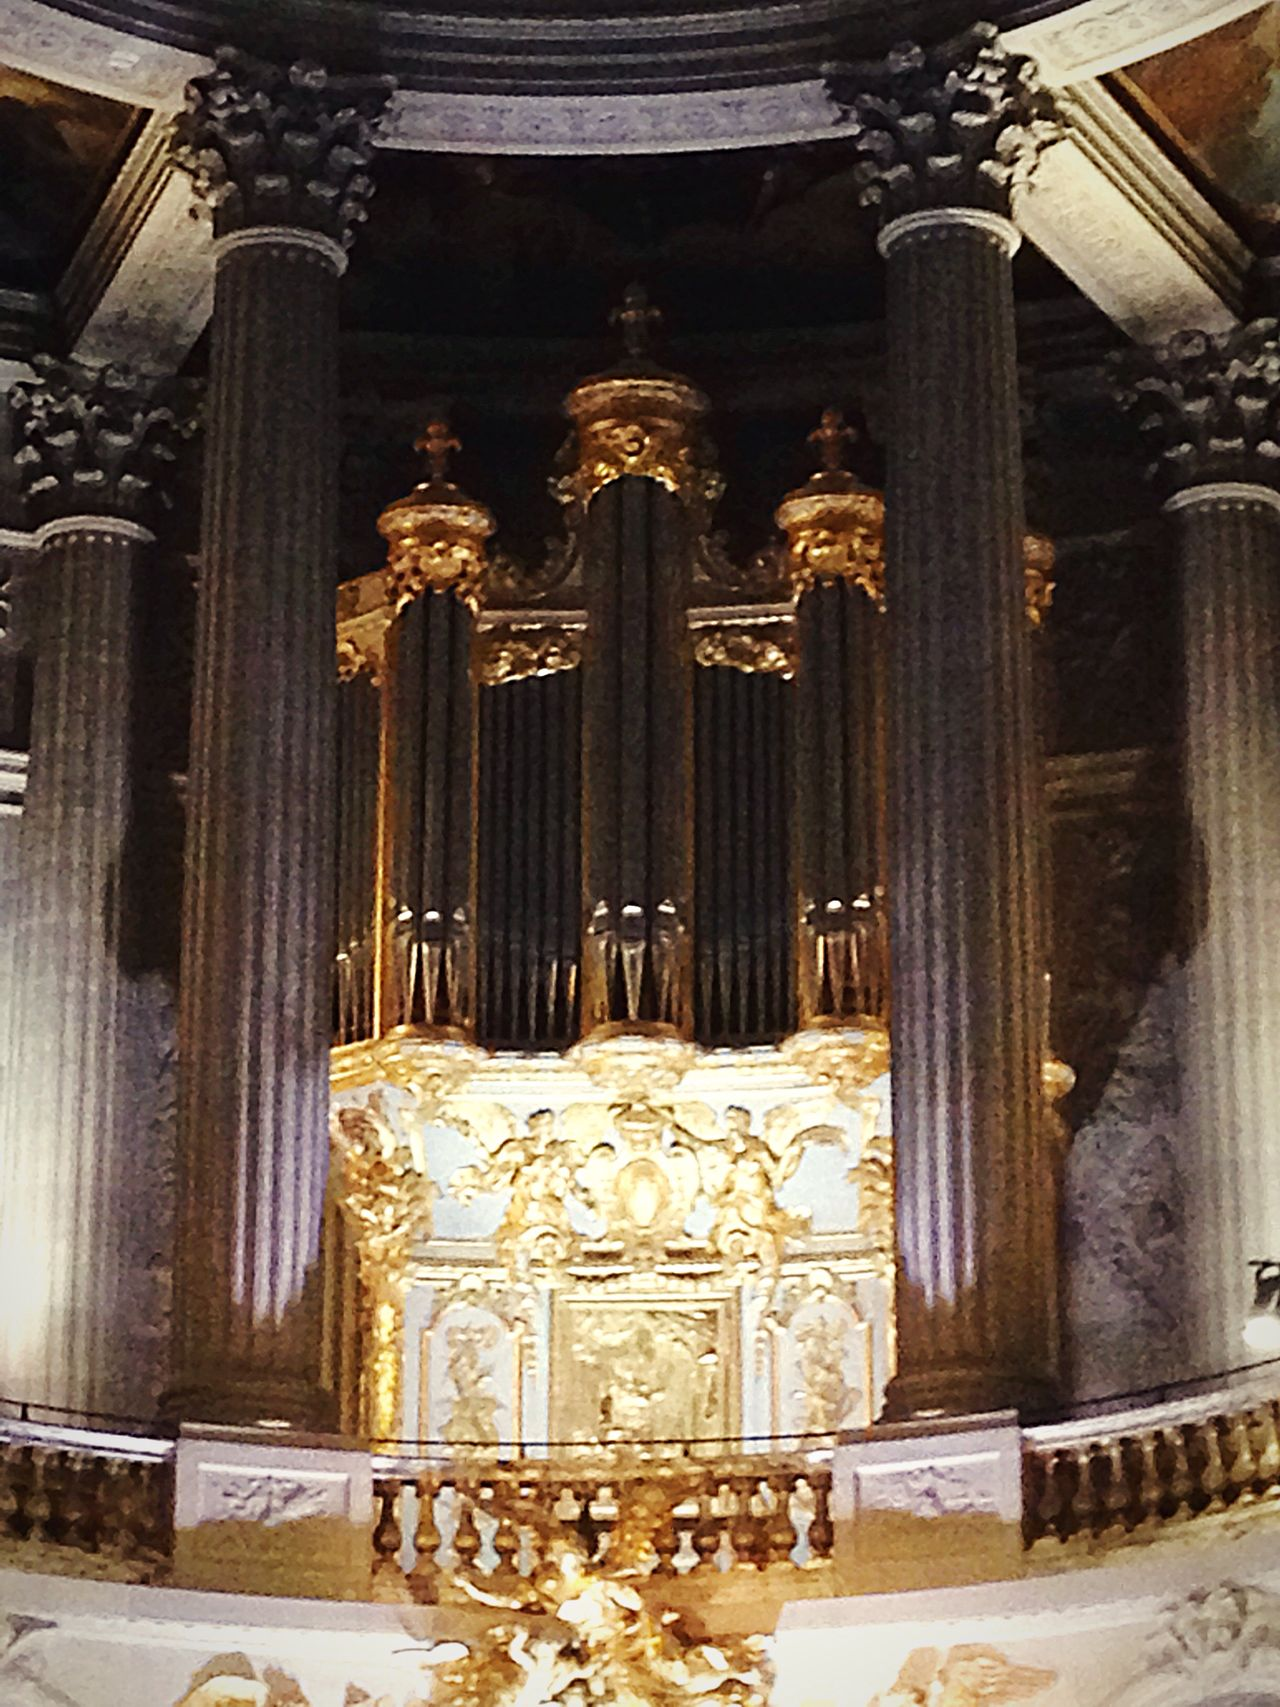 Religion Place Of Worship Indoors  Spirituality No People Statue Travel Destinations Cultures Day Historical Reenactment Patrimoine Great Organ Royal Chapelle Of Versailles